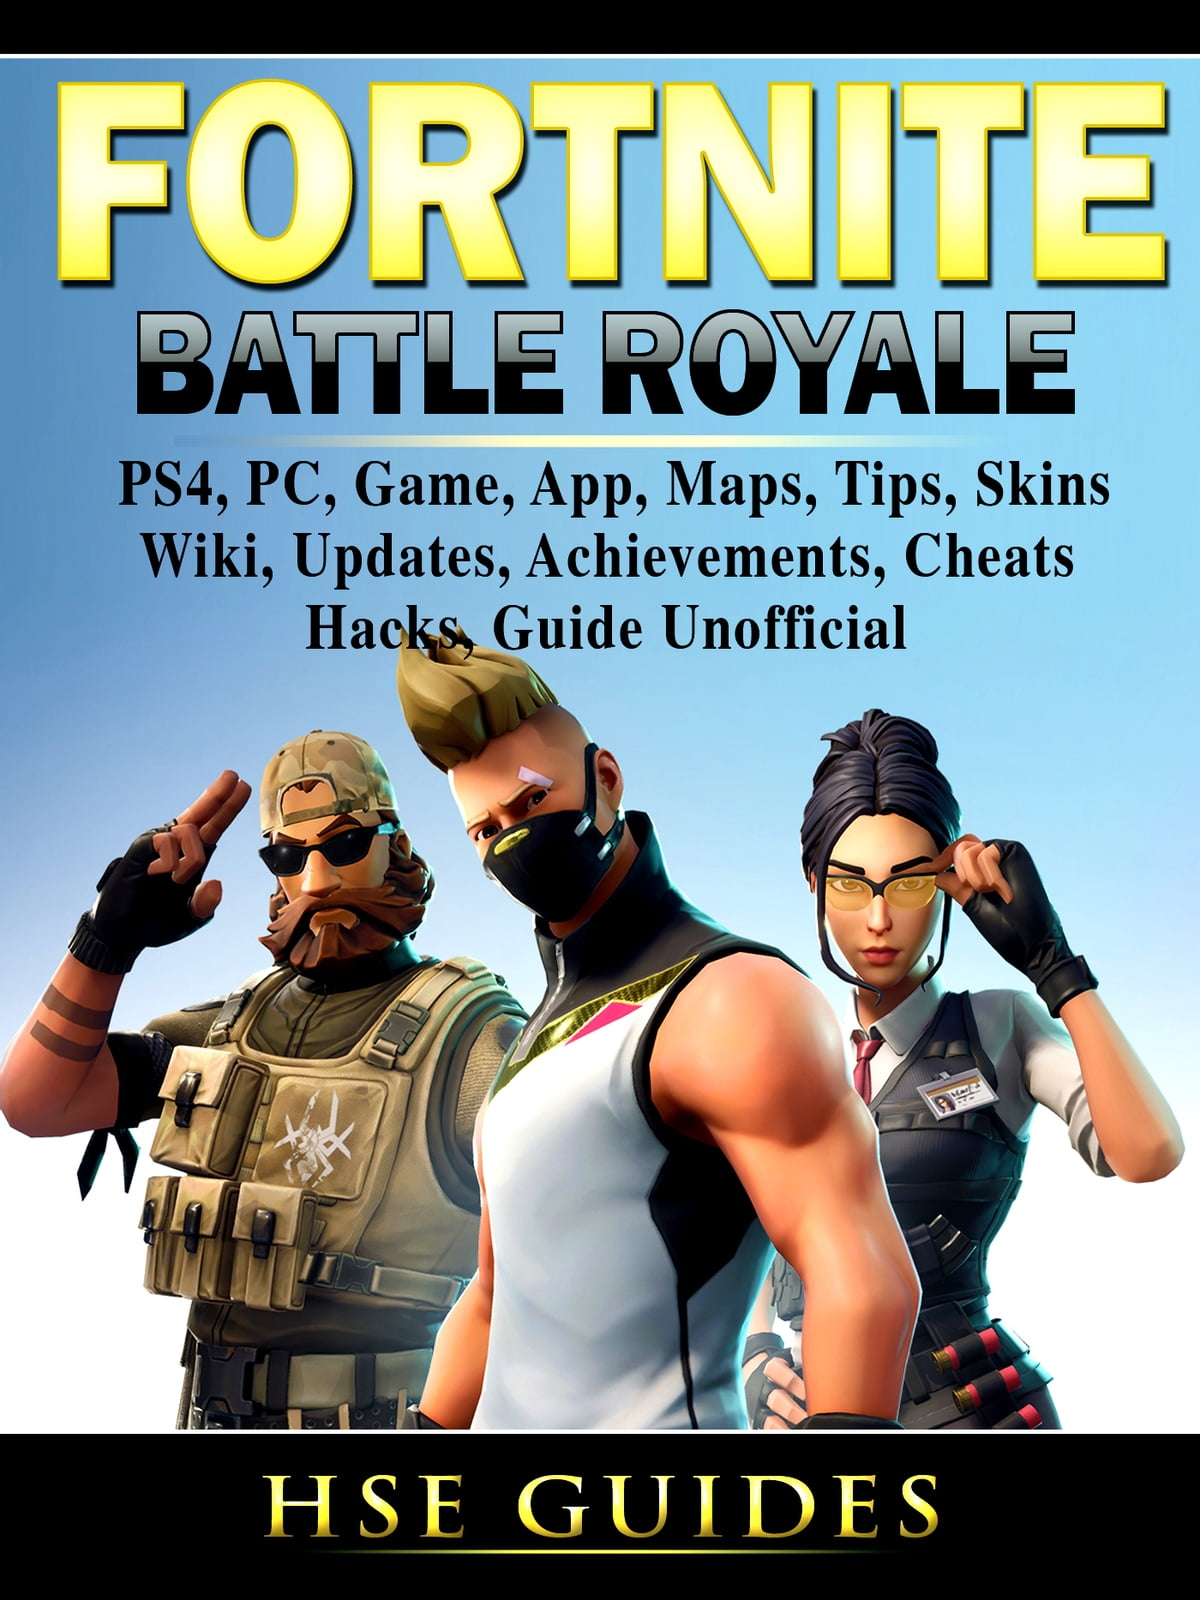 Fortnite Battle Royale, PS4, PC, Game, App, Maps, Tips, Skins, Wiki,  Updates, Achievements, Cheats, Hacks, Guide Unofficial ebook by Hse Games -